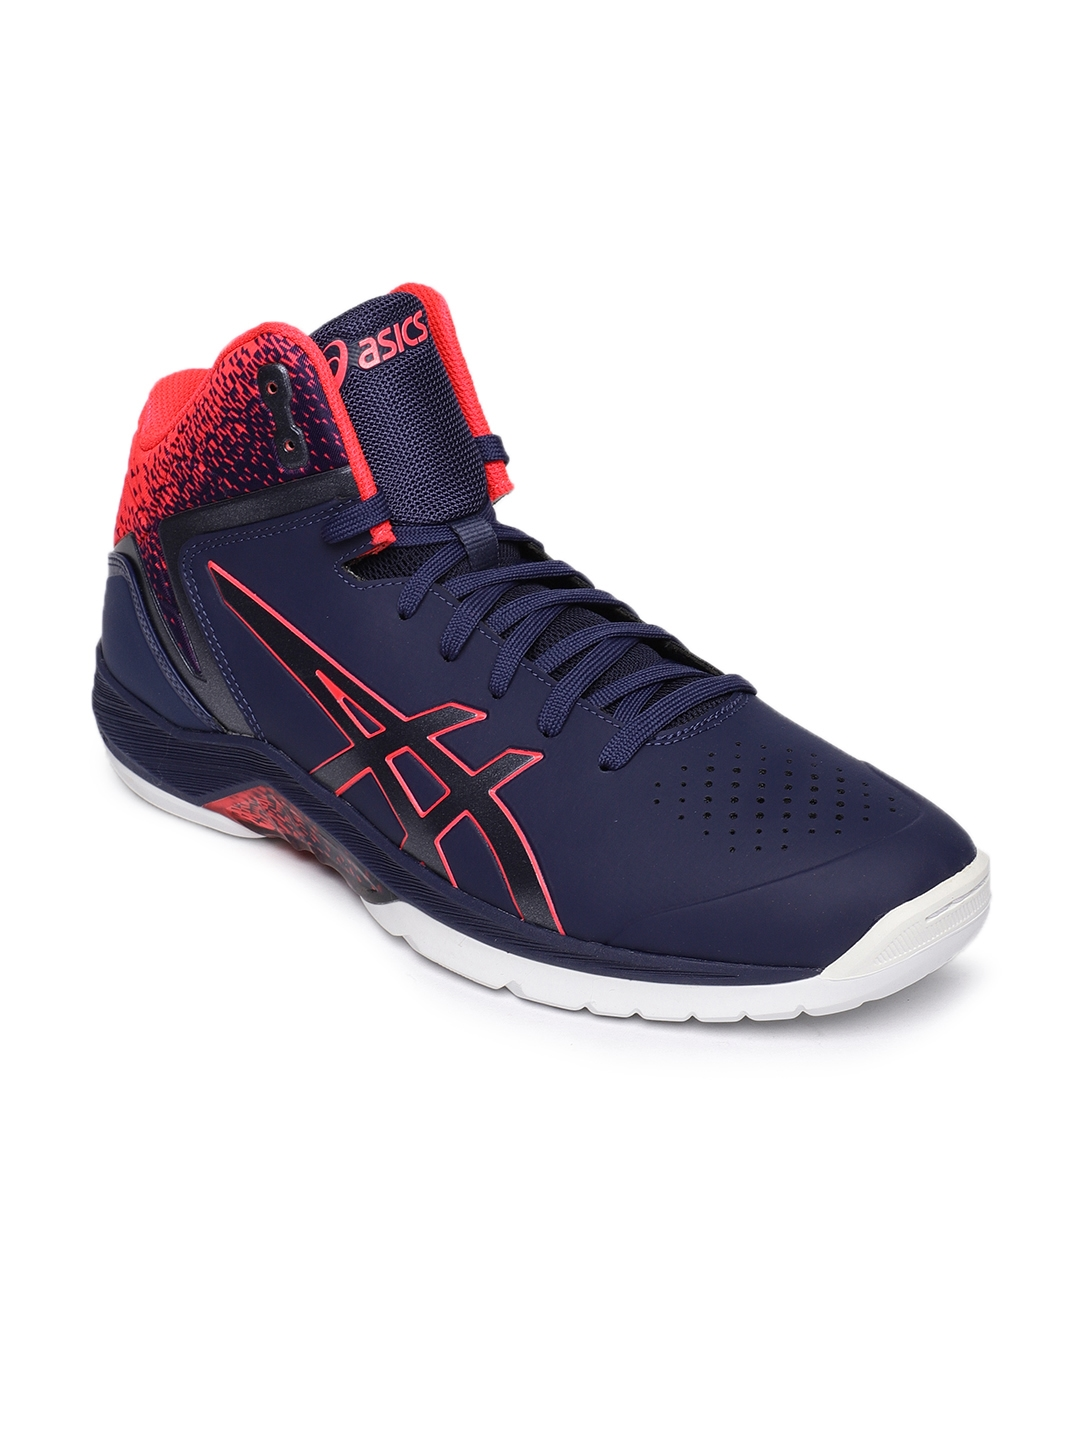 GELTRIFORCE 3 AWC Basketball Shoes